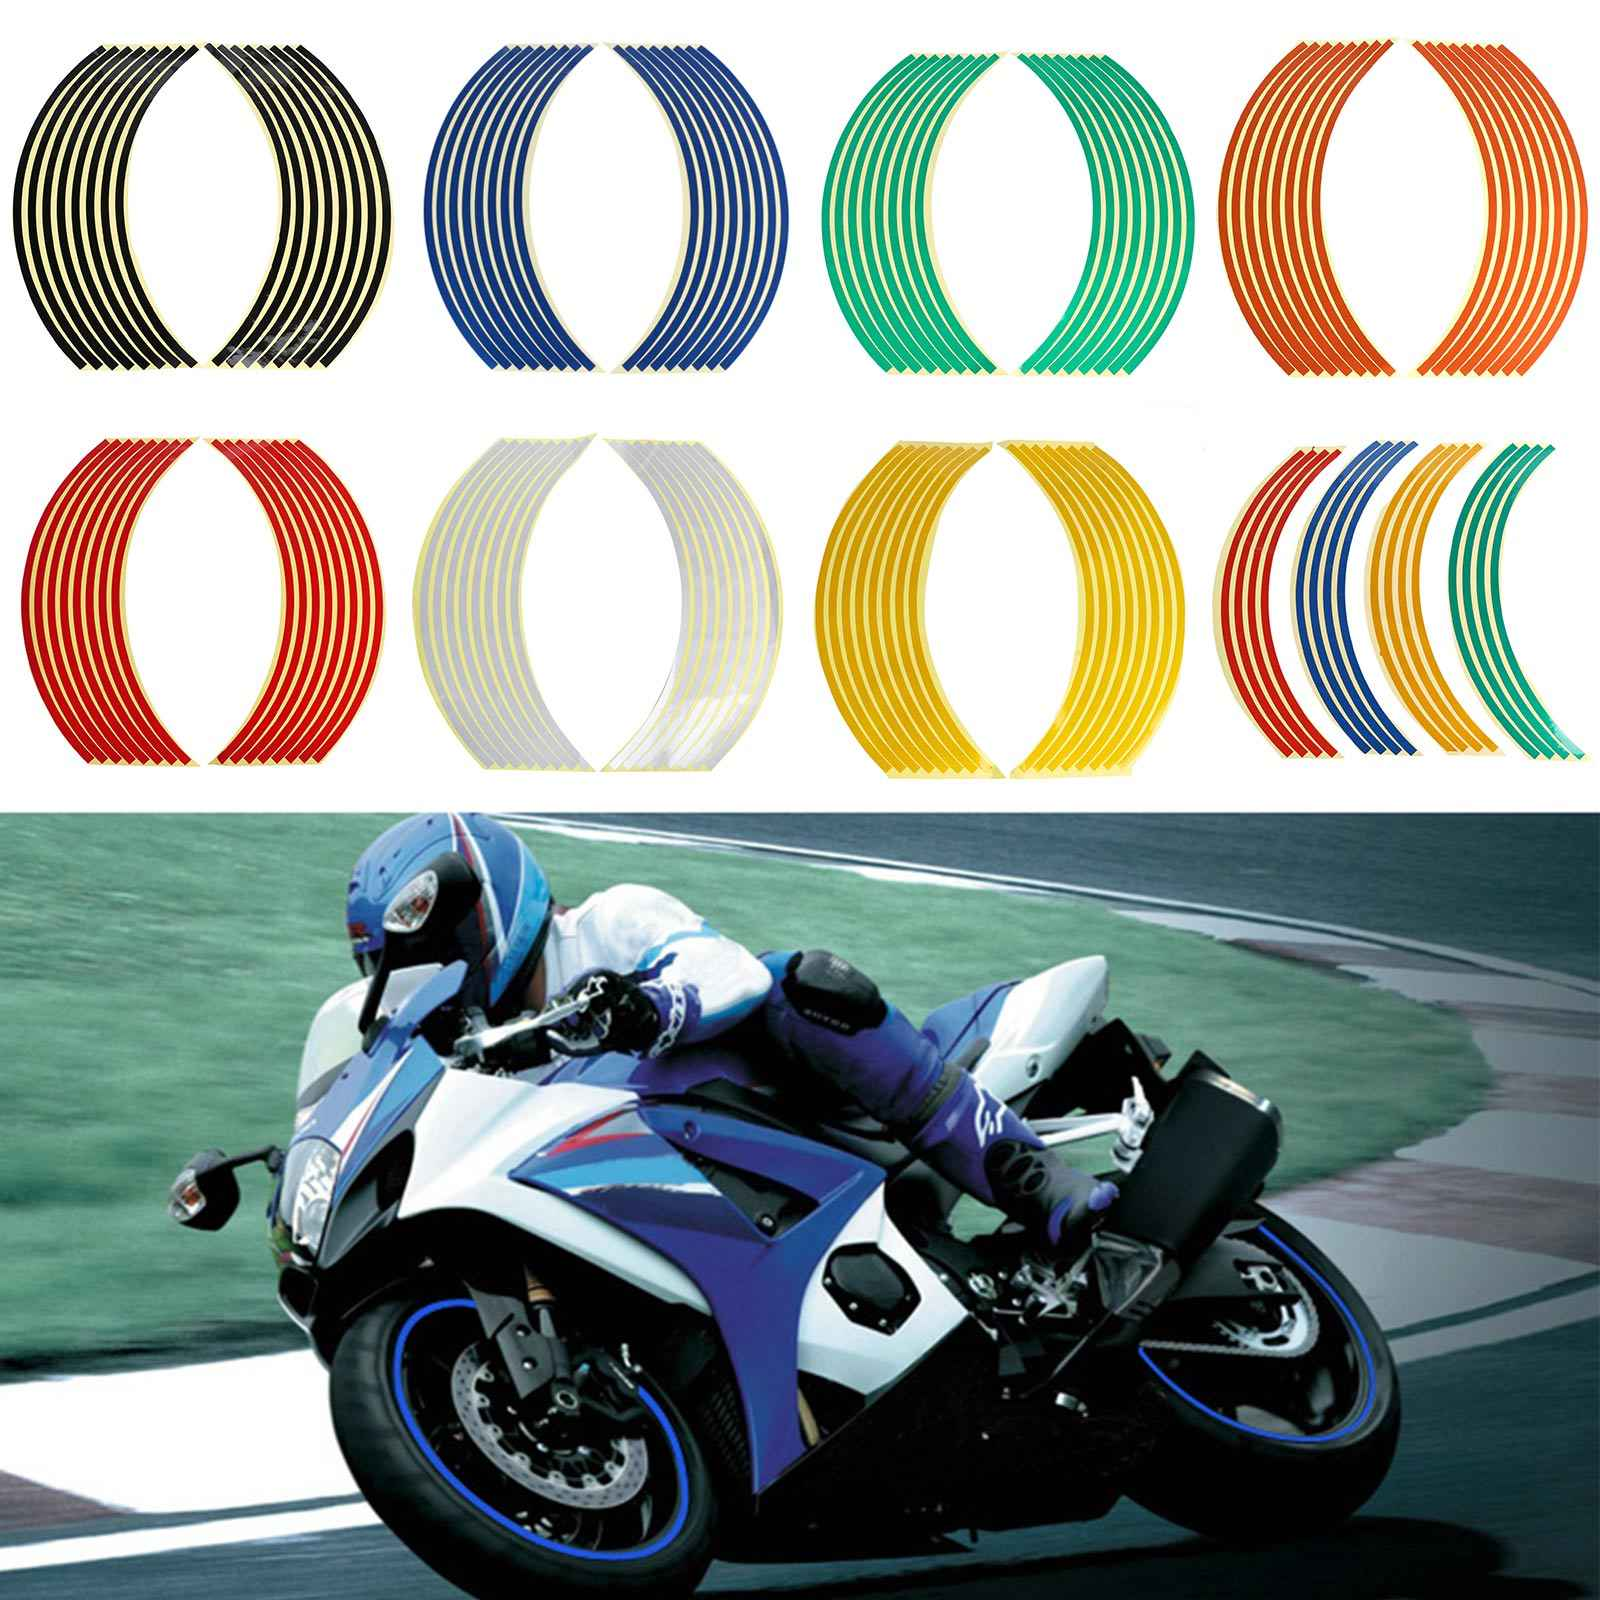 Universal Motorcycle Wheel Sticker Bike 18 Wheel Tire Rim Stripe Sticker Reflective Decals For Honda Suzuki Yamaha Harley